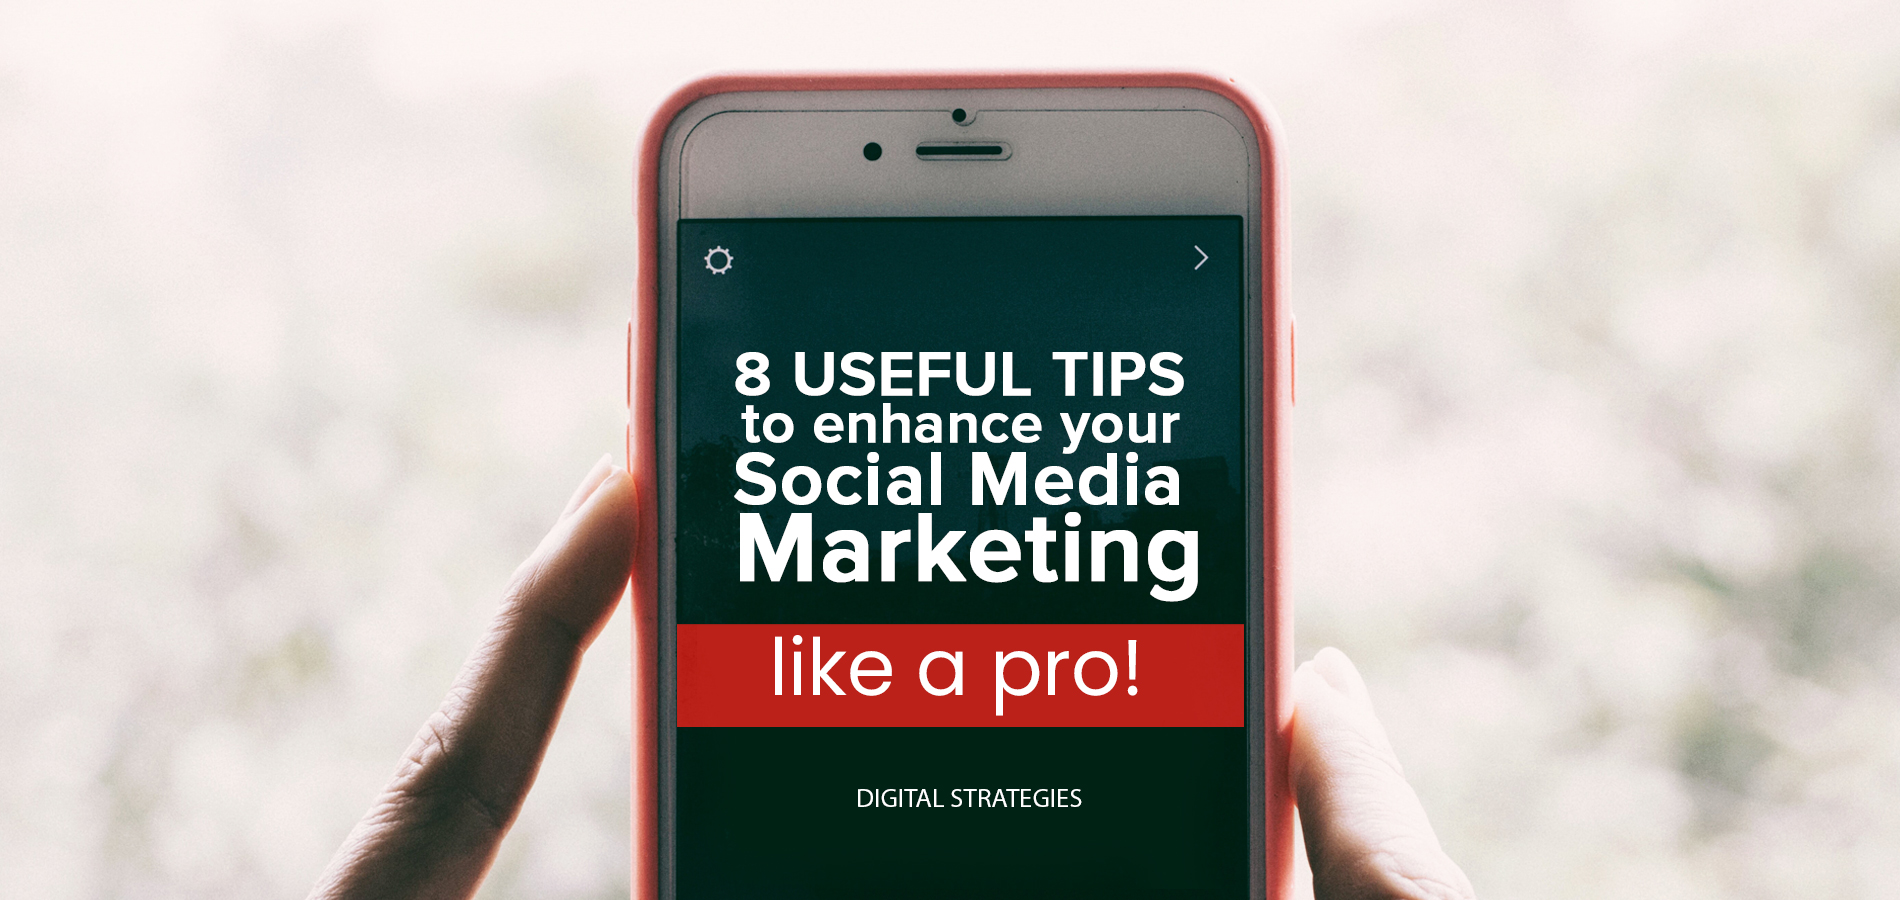 Tips to be the best at Social Media